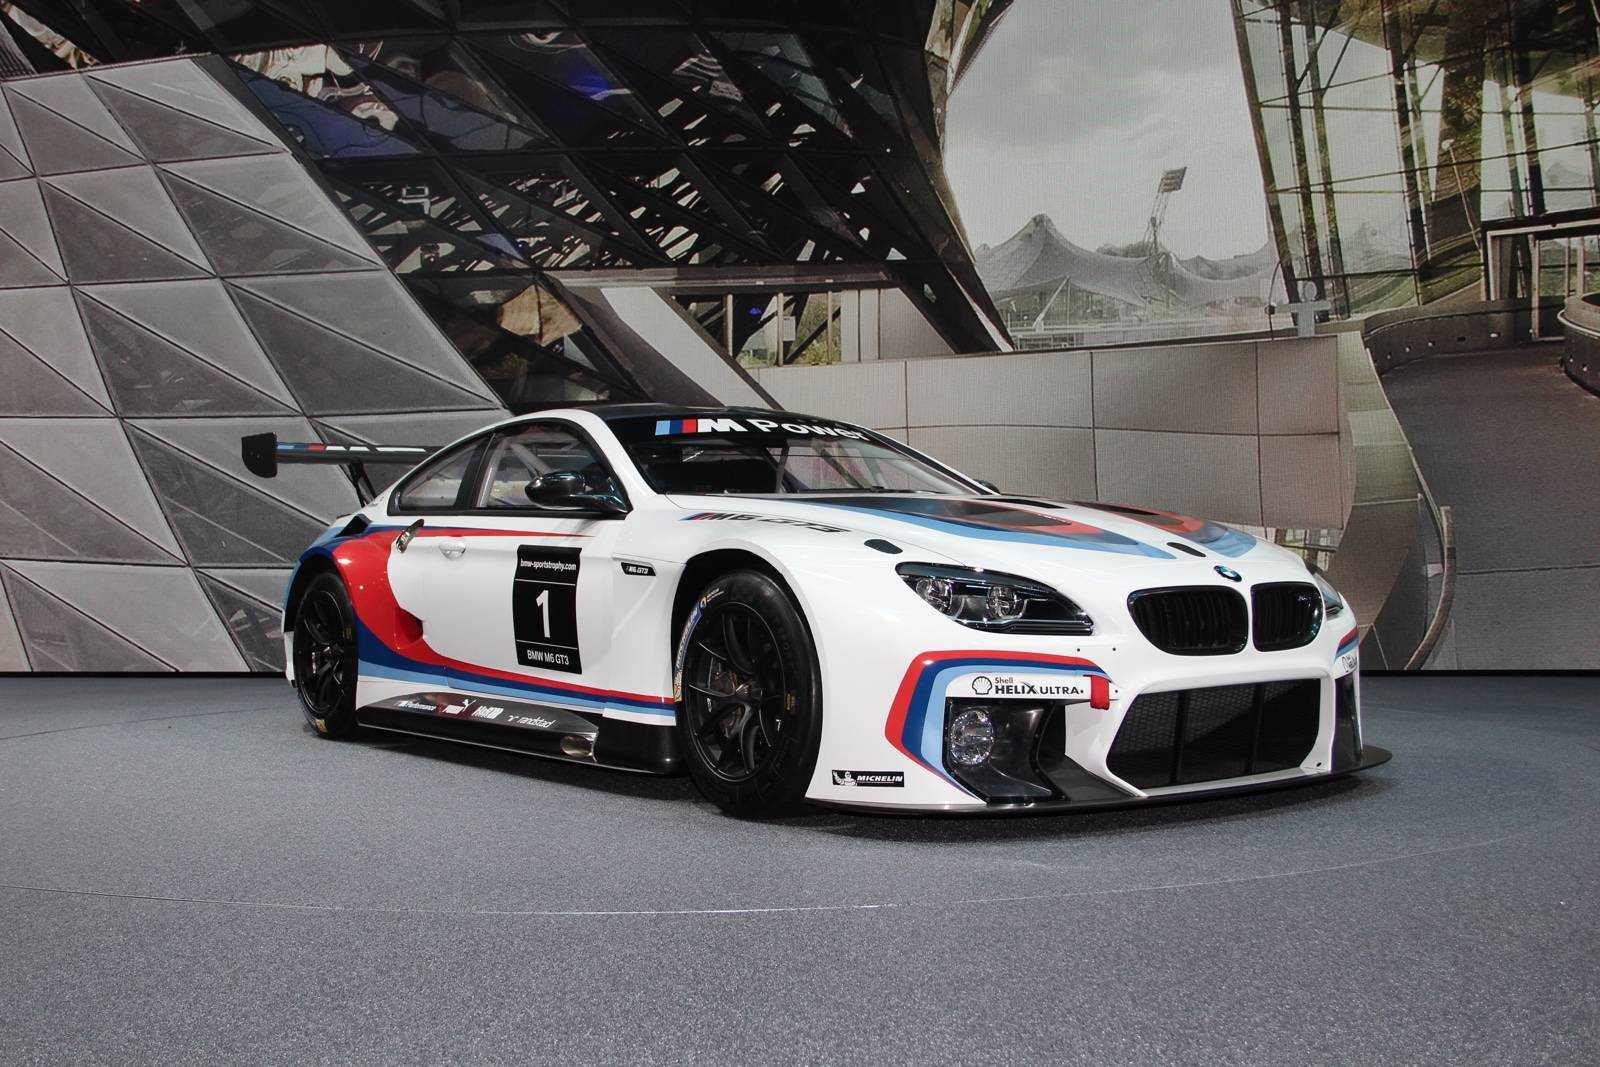 BMW M6 GT3 Debuts at the 66th IAA Cars 2015: All Set to Take GT Racing Circuit by Storm